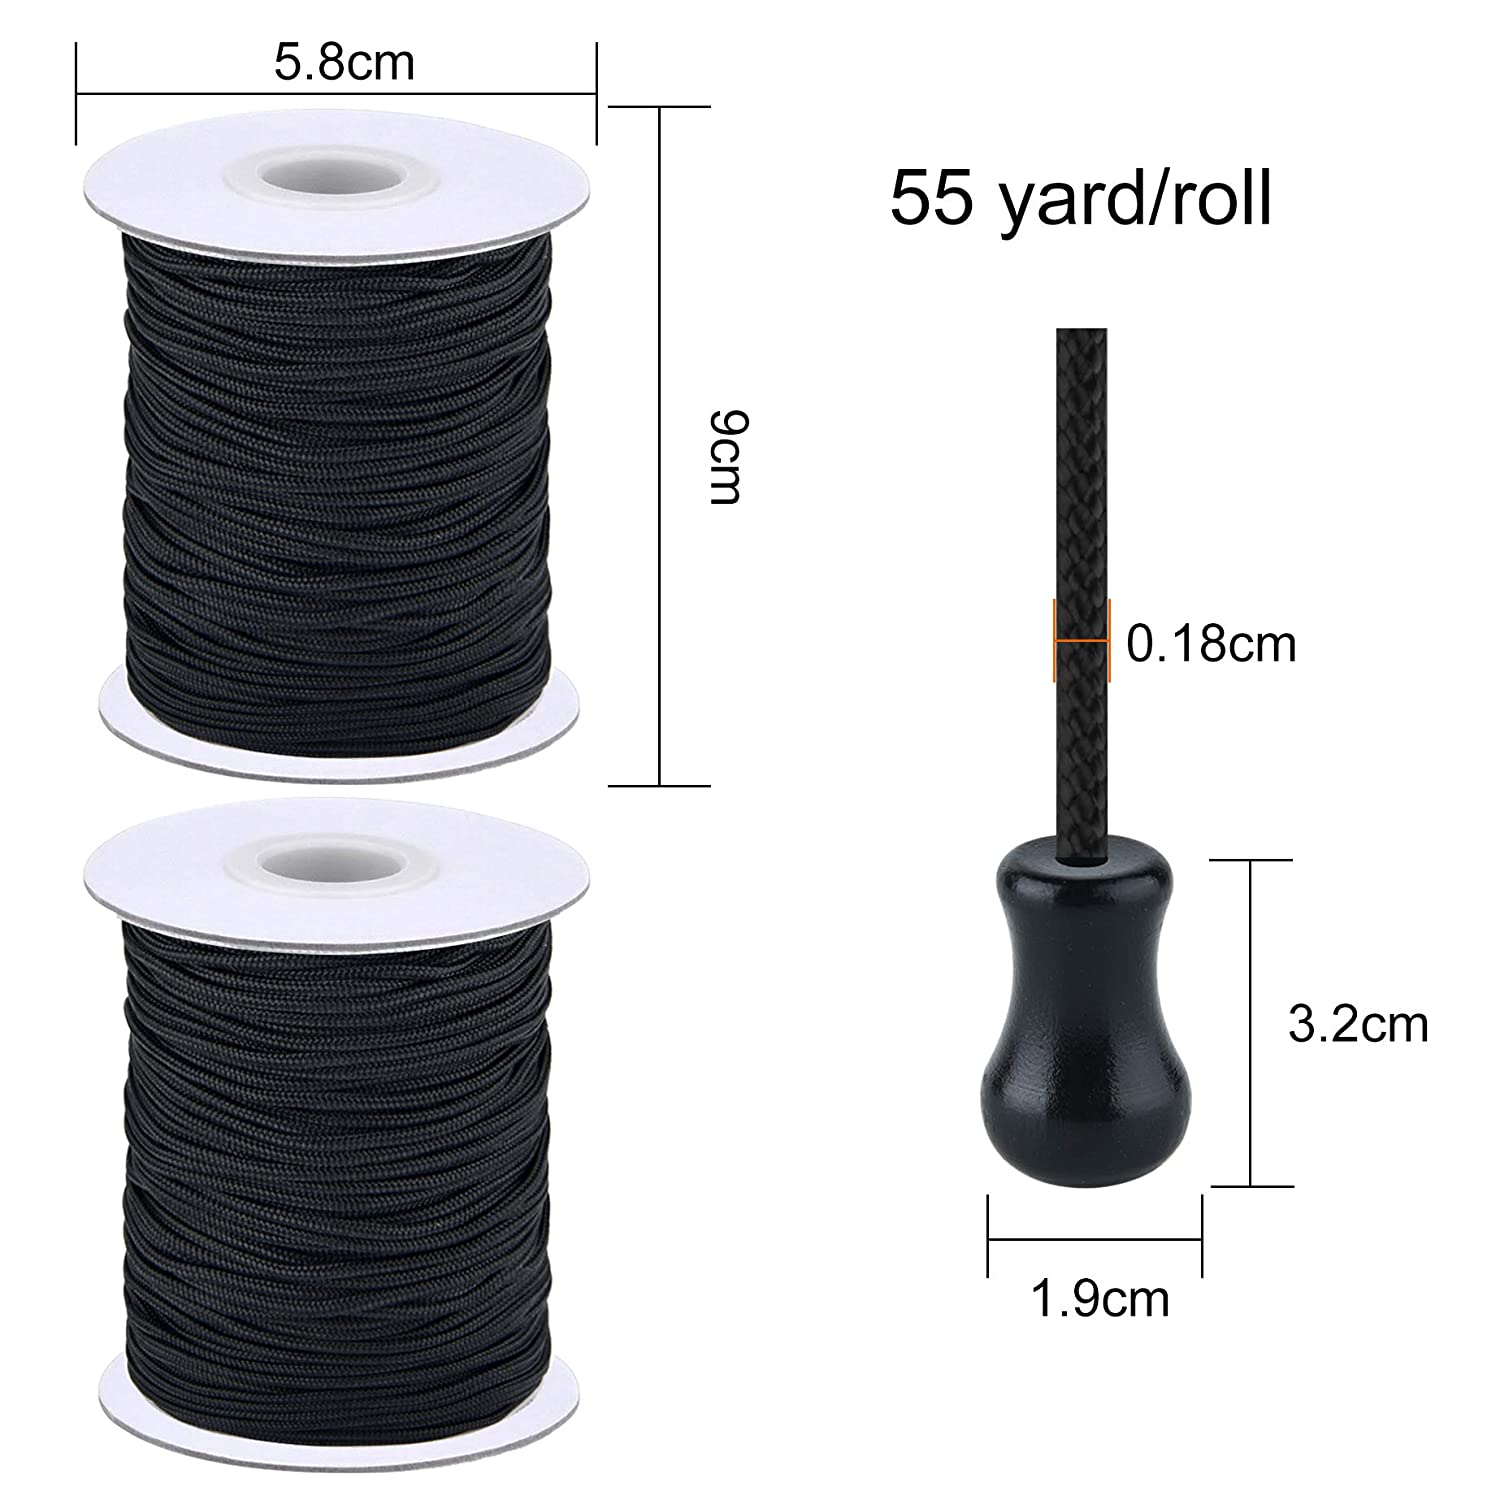 Gardening Plant and Crafts SAYAYA 2 Roll 1.8 mm Braided Lift Shade Cord 55 Yards//Roll with 8 Pieces Wood Pendant for Aluminum Blind Shade White